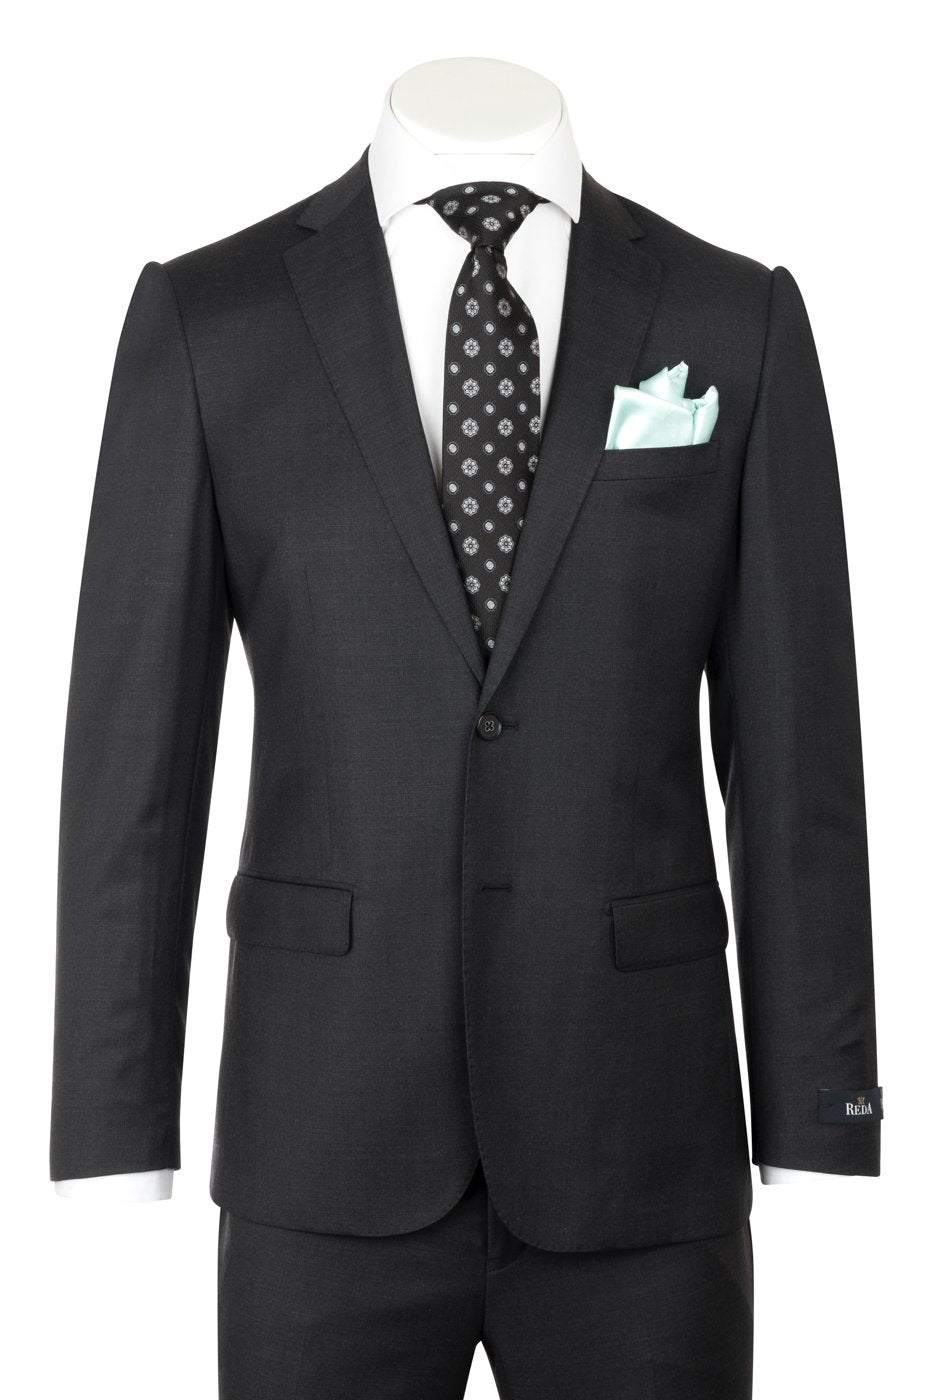 PORTO Slim Fit, Charcoal Gray, Pure Wool Suit by REDA Cloth by Canaletto Menswear CRS901